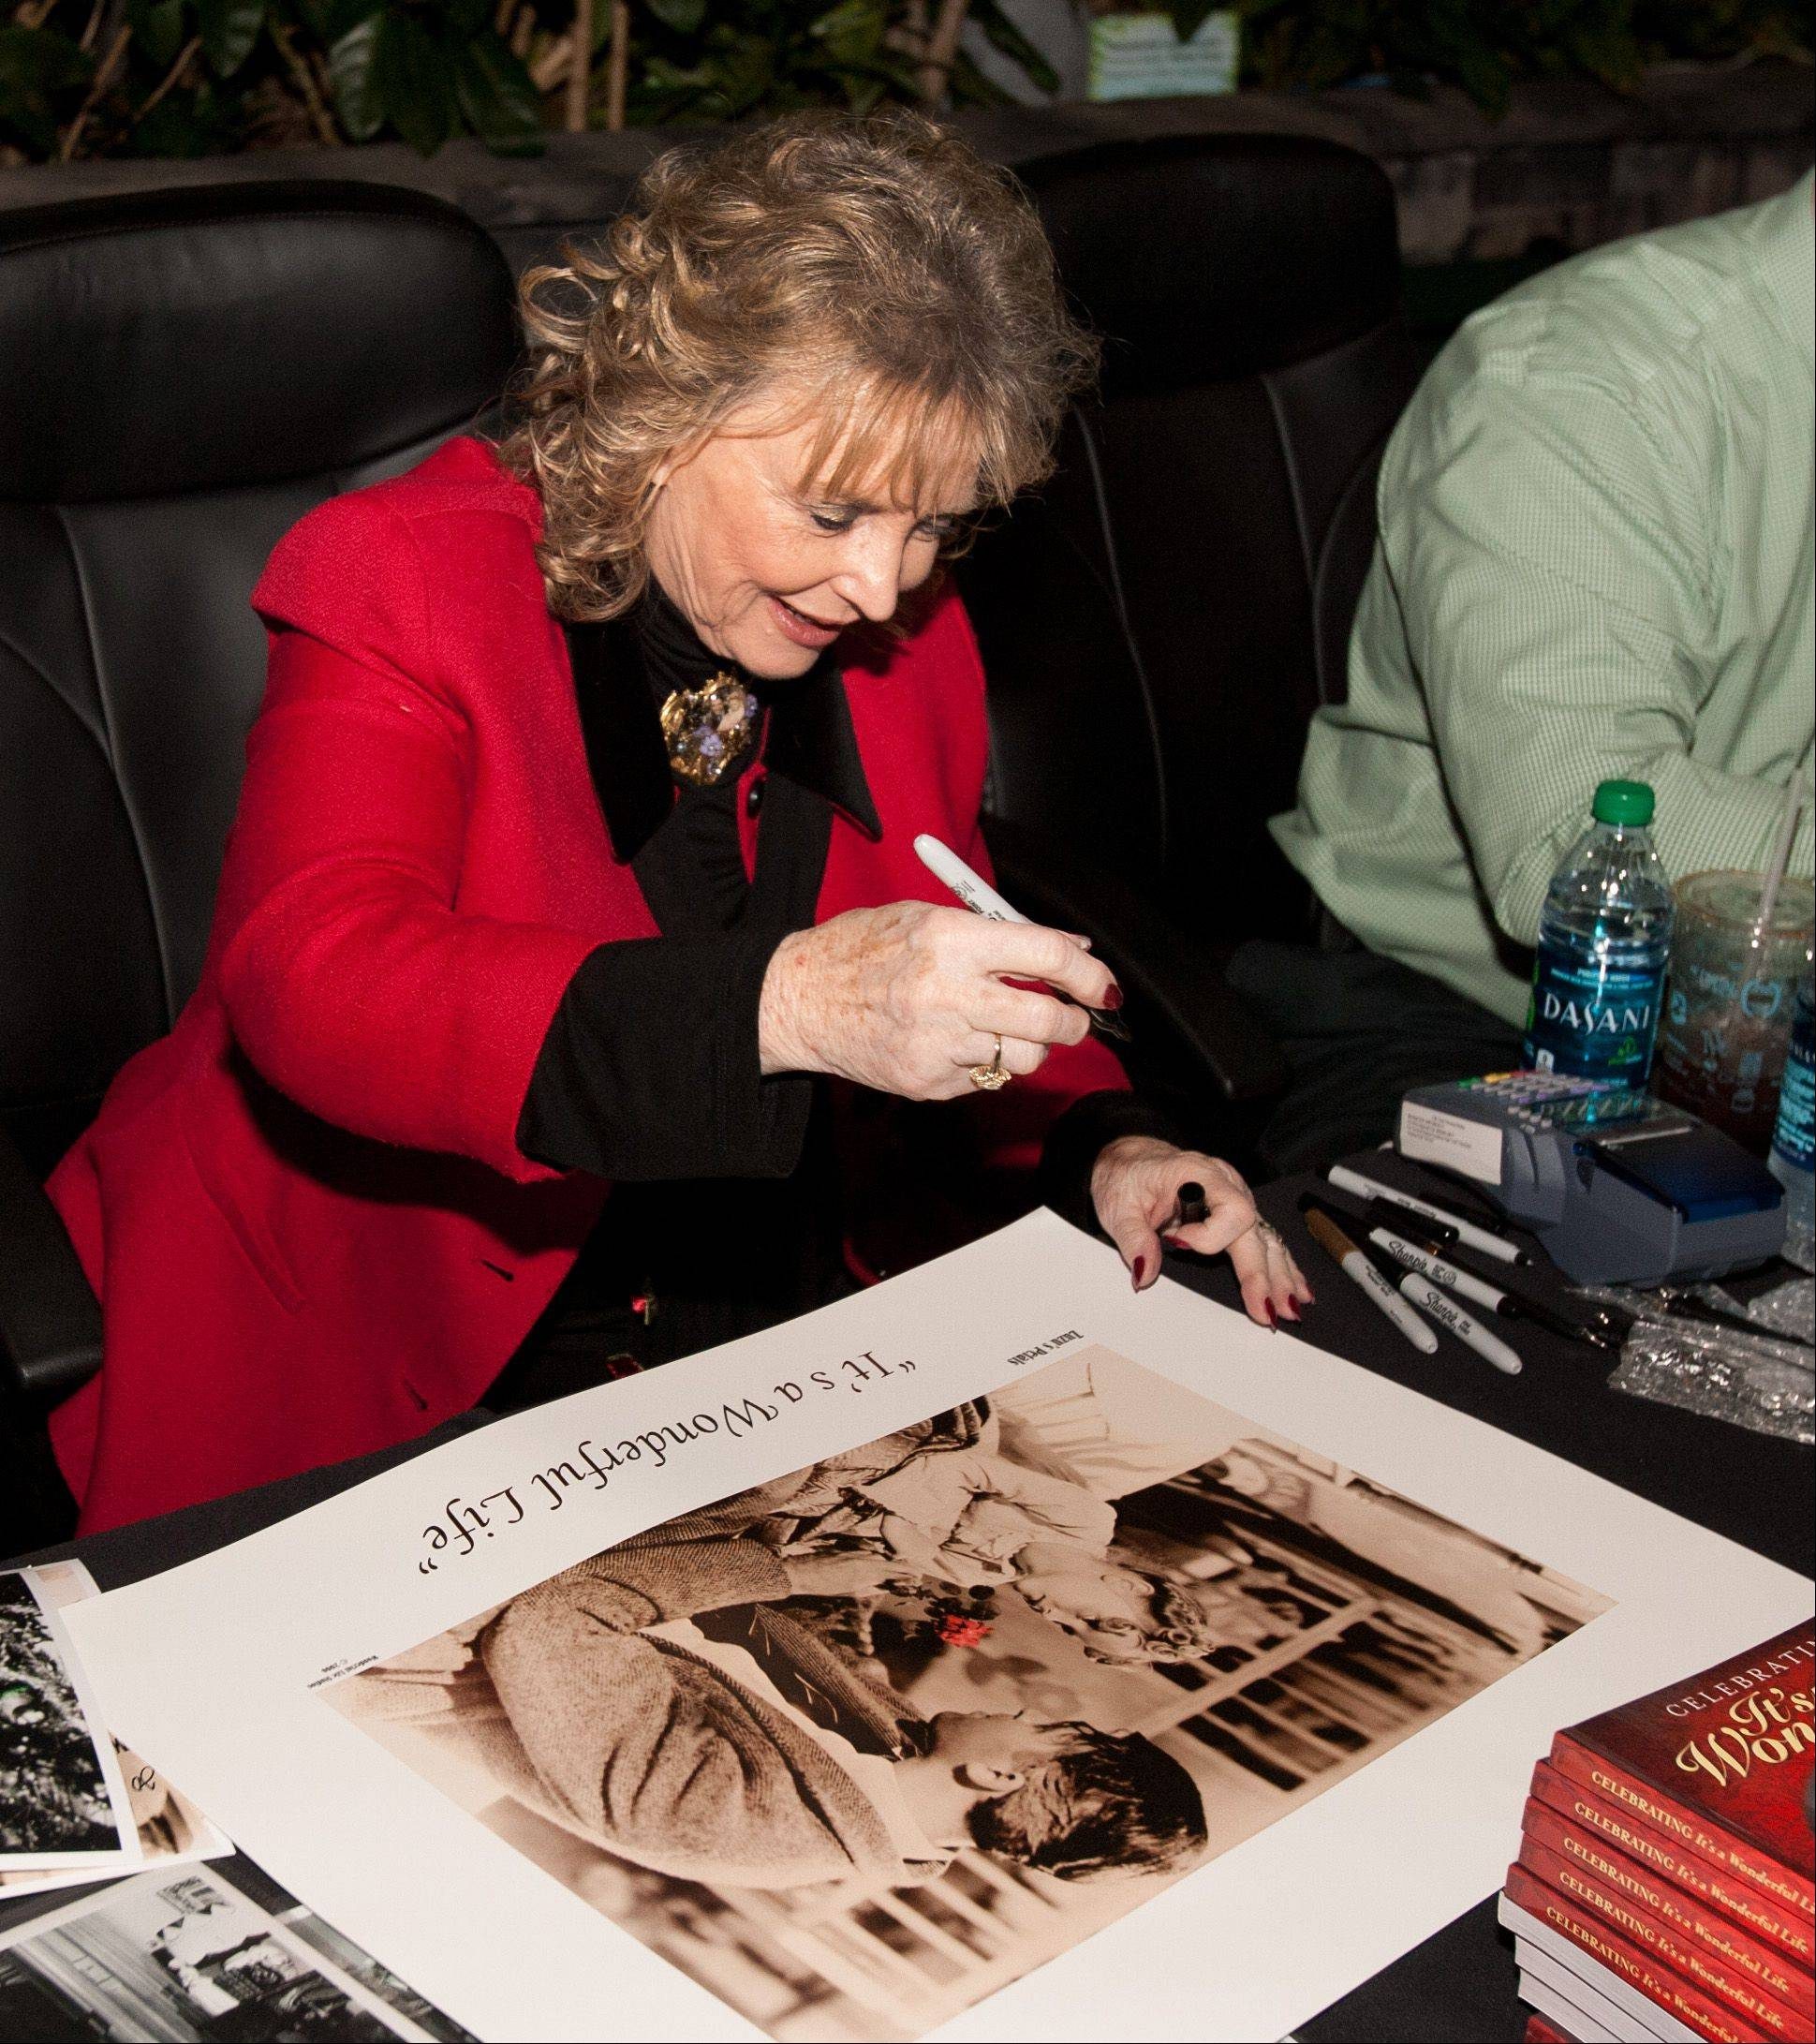 Karolyn Grimes, who played Jimmy Stewart�s daughter Zuzu Bailey in the movie �It�s a Wonderful Life,� met fans and signed autographs at Hollywood Palms in Naperville.